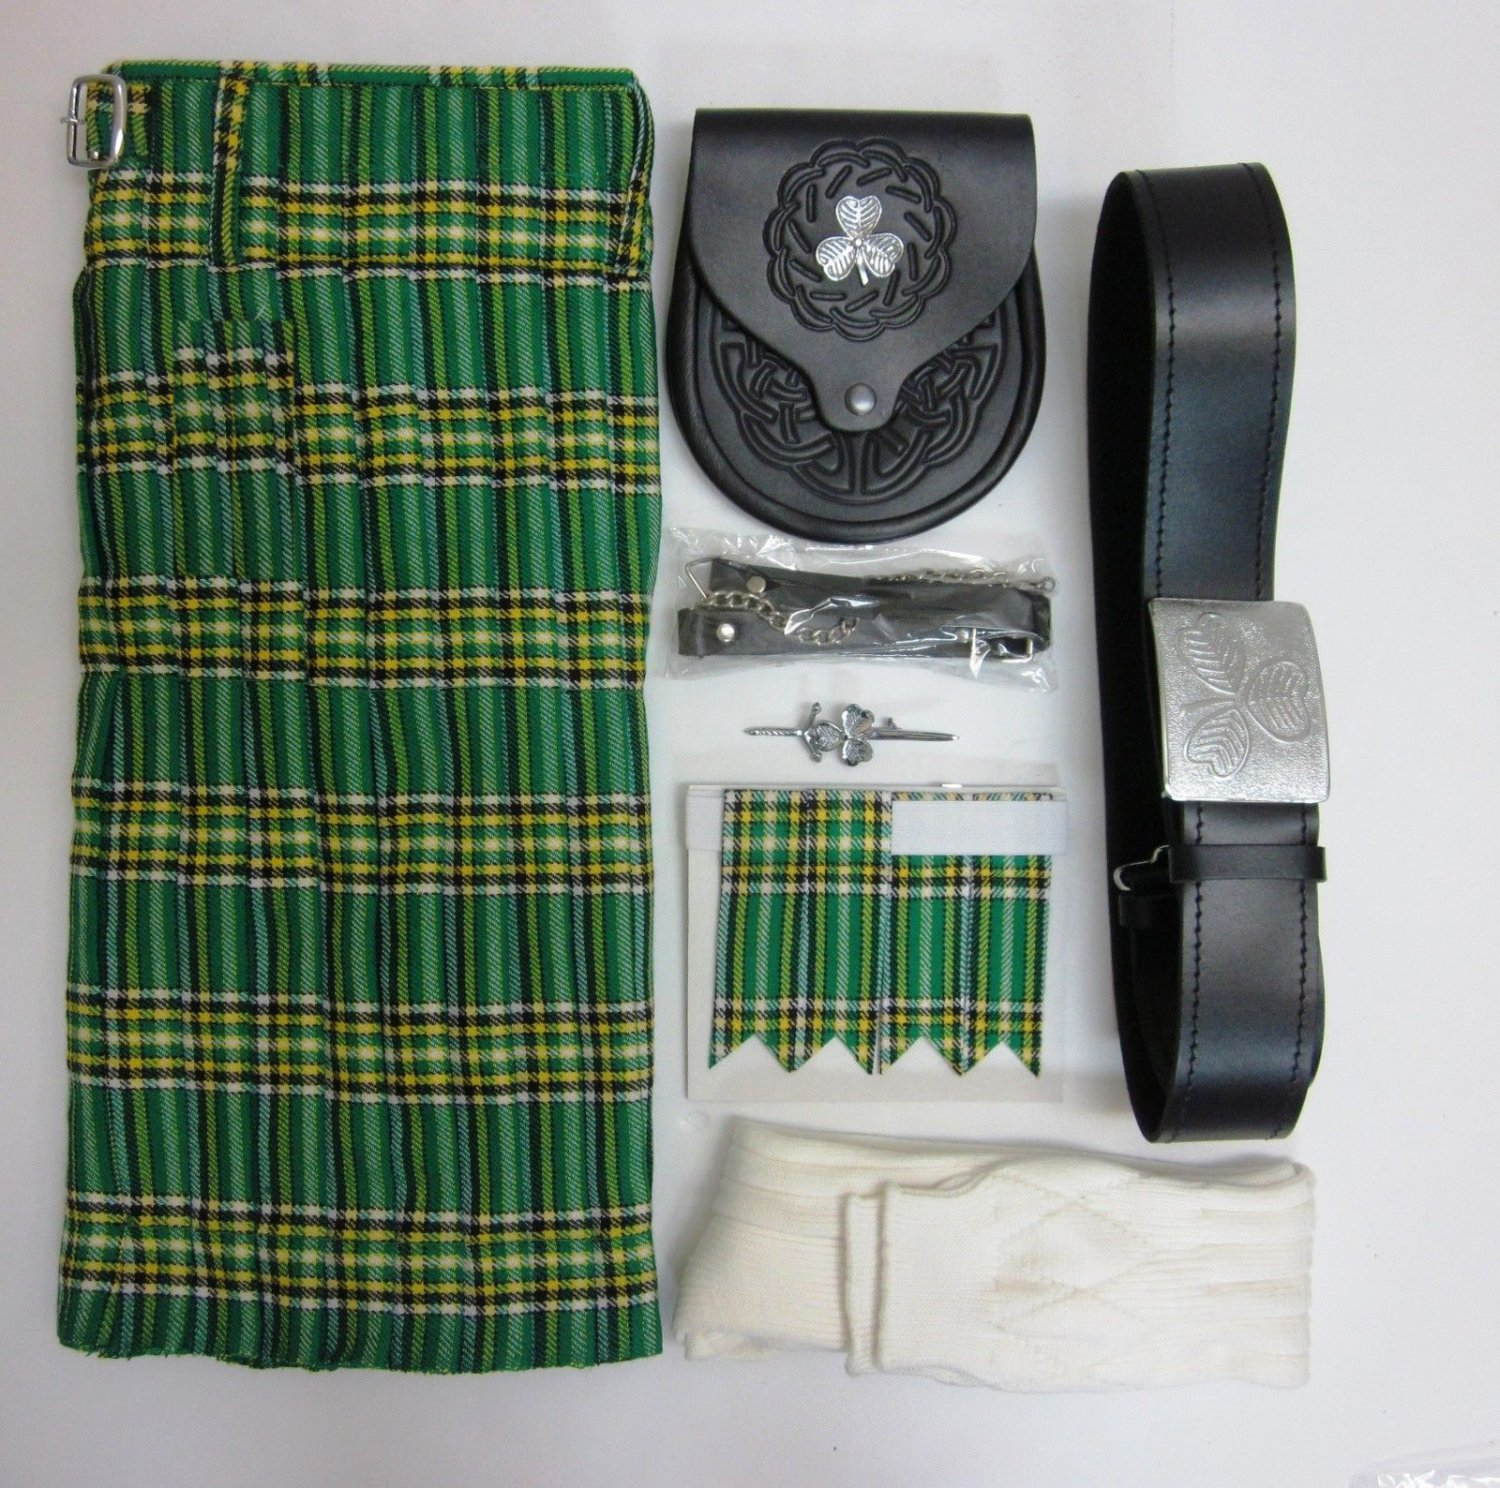 5 Pieces Irish National Traditional Tartan Kilt outfit Made to Measure Size 34